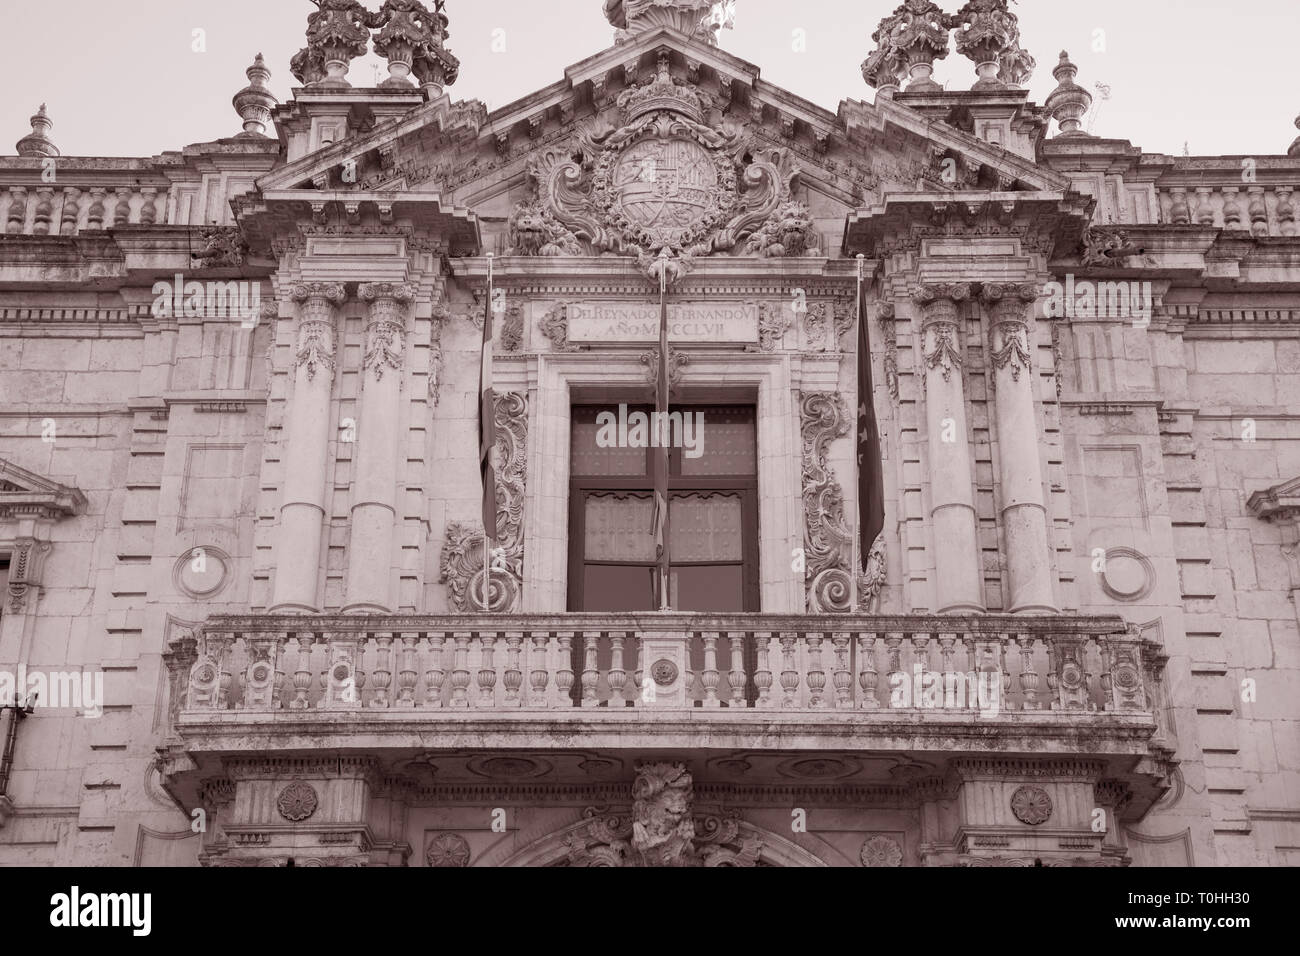 Fabrica Real de Tabacos; Seville; Spain in Black and White Speia Tone - Stock Image